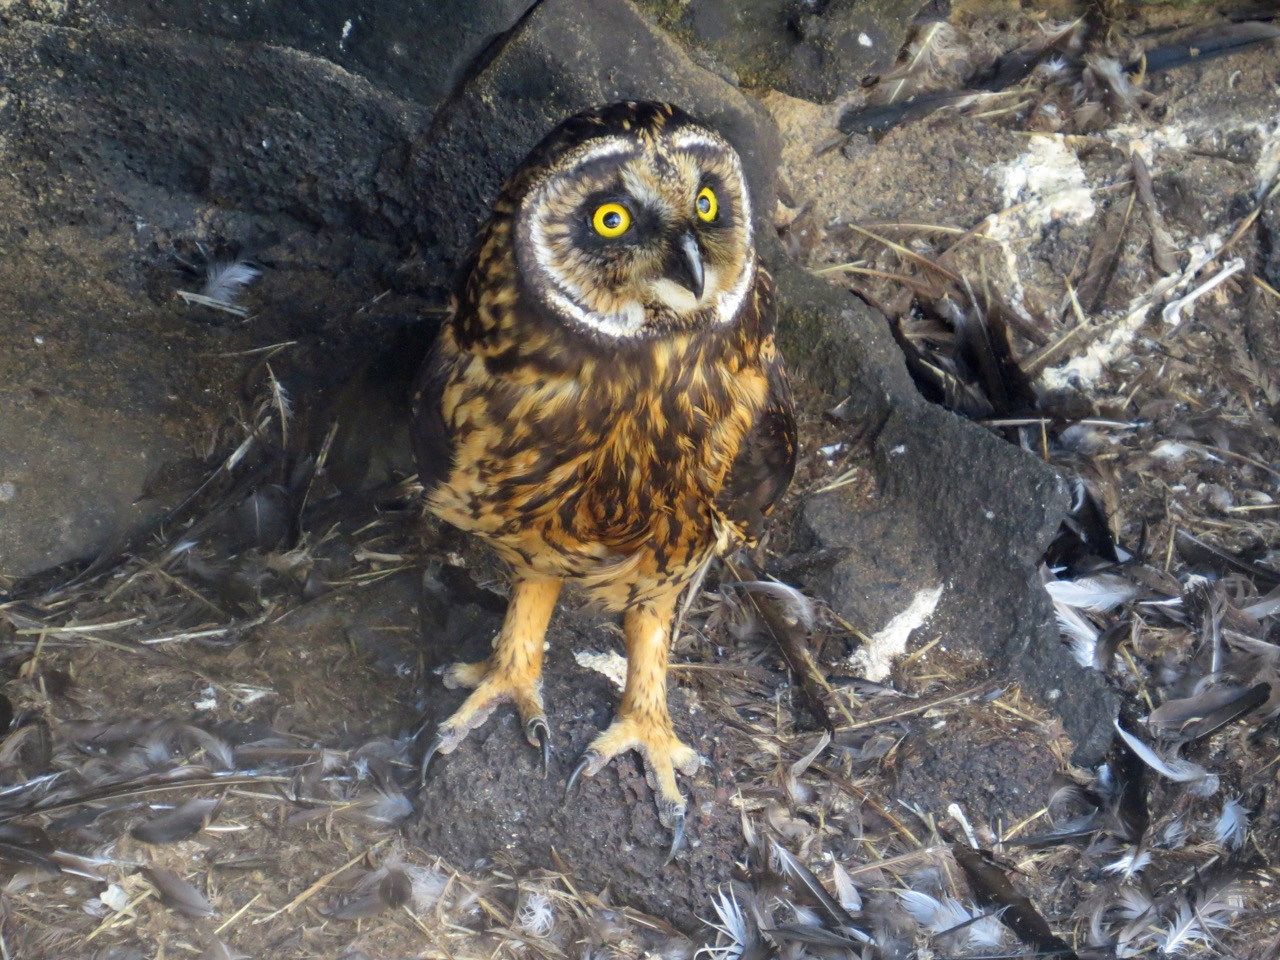 vaccinated cruises to the Galapagos yield views like this short-eared owl by Howard Topoff